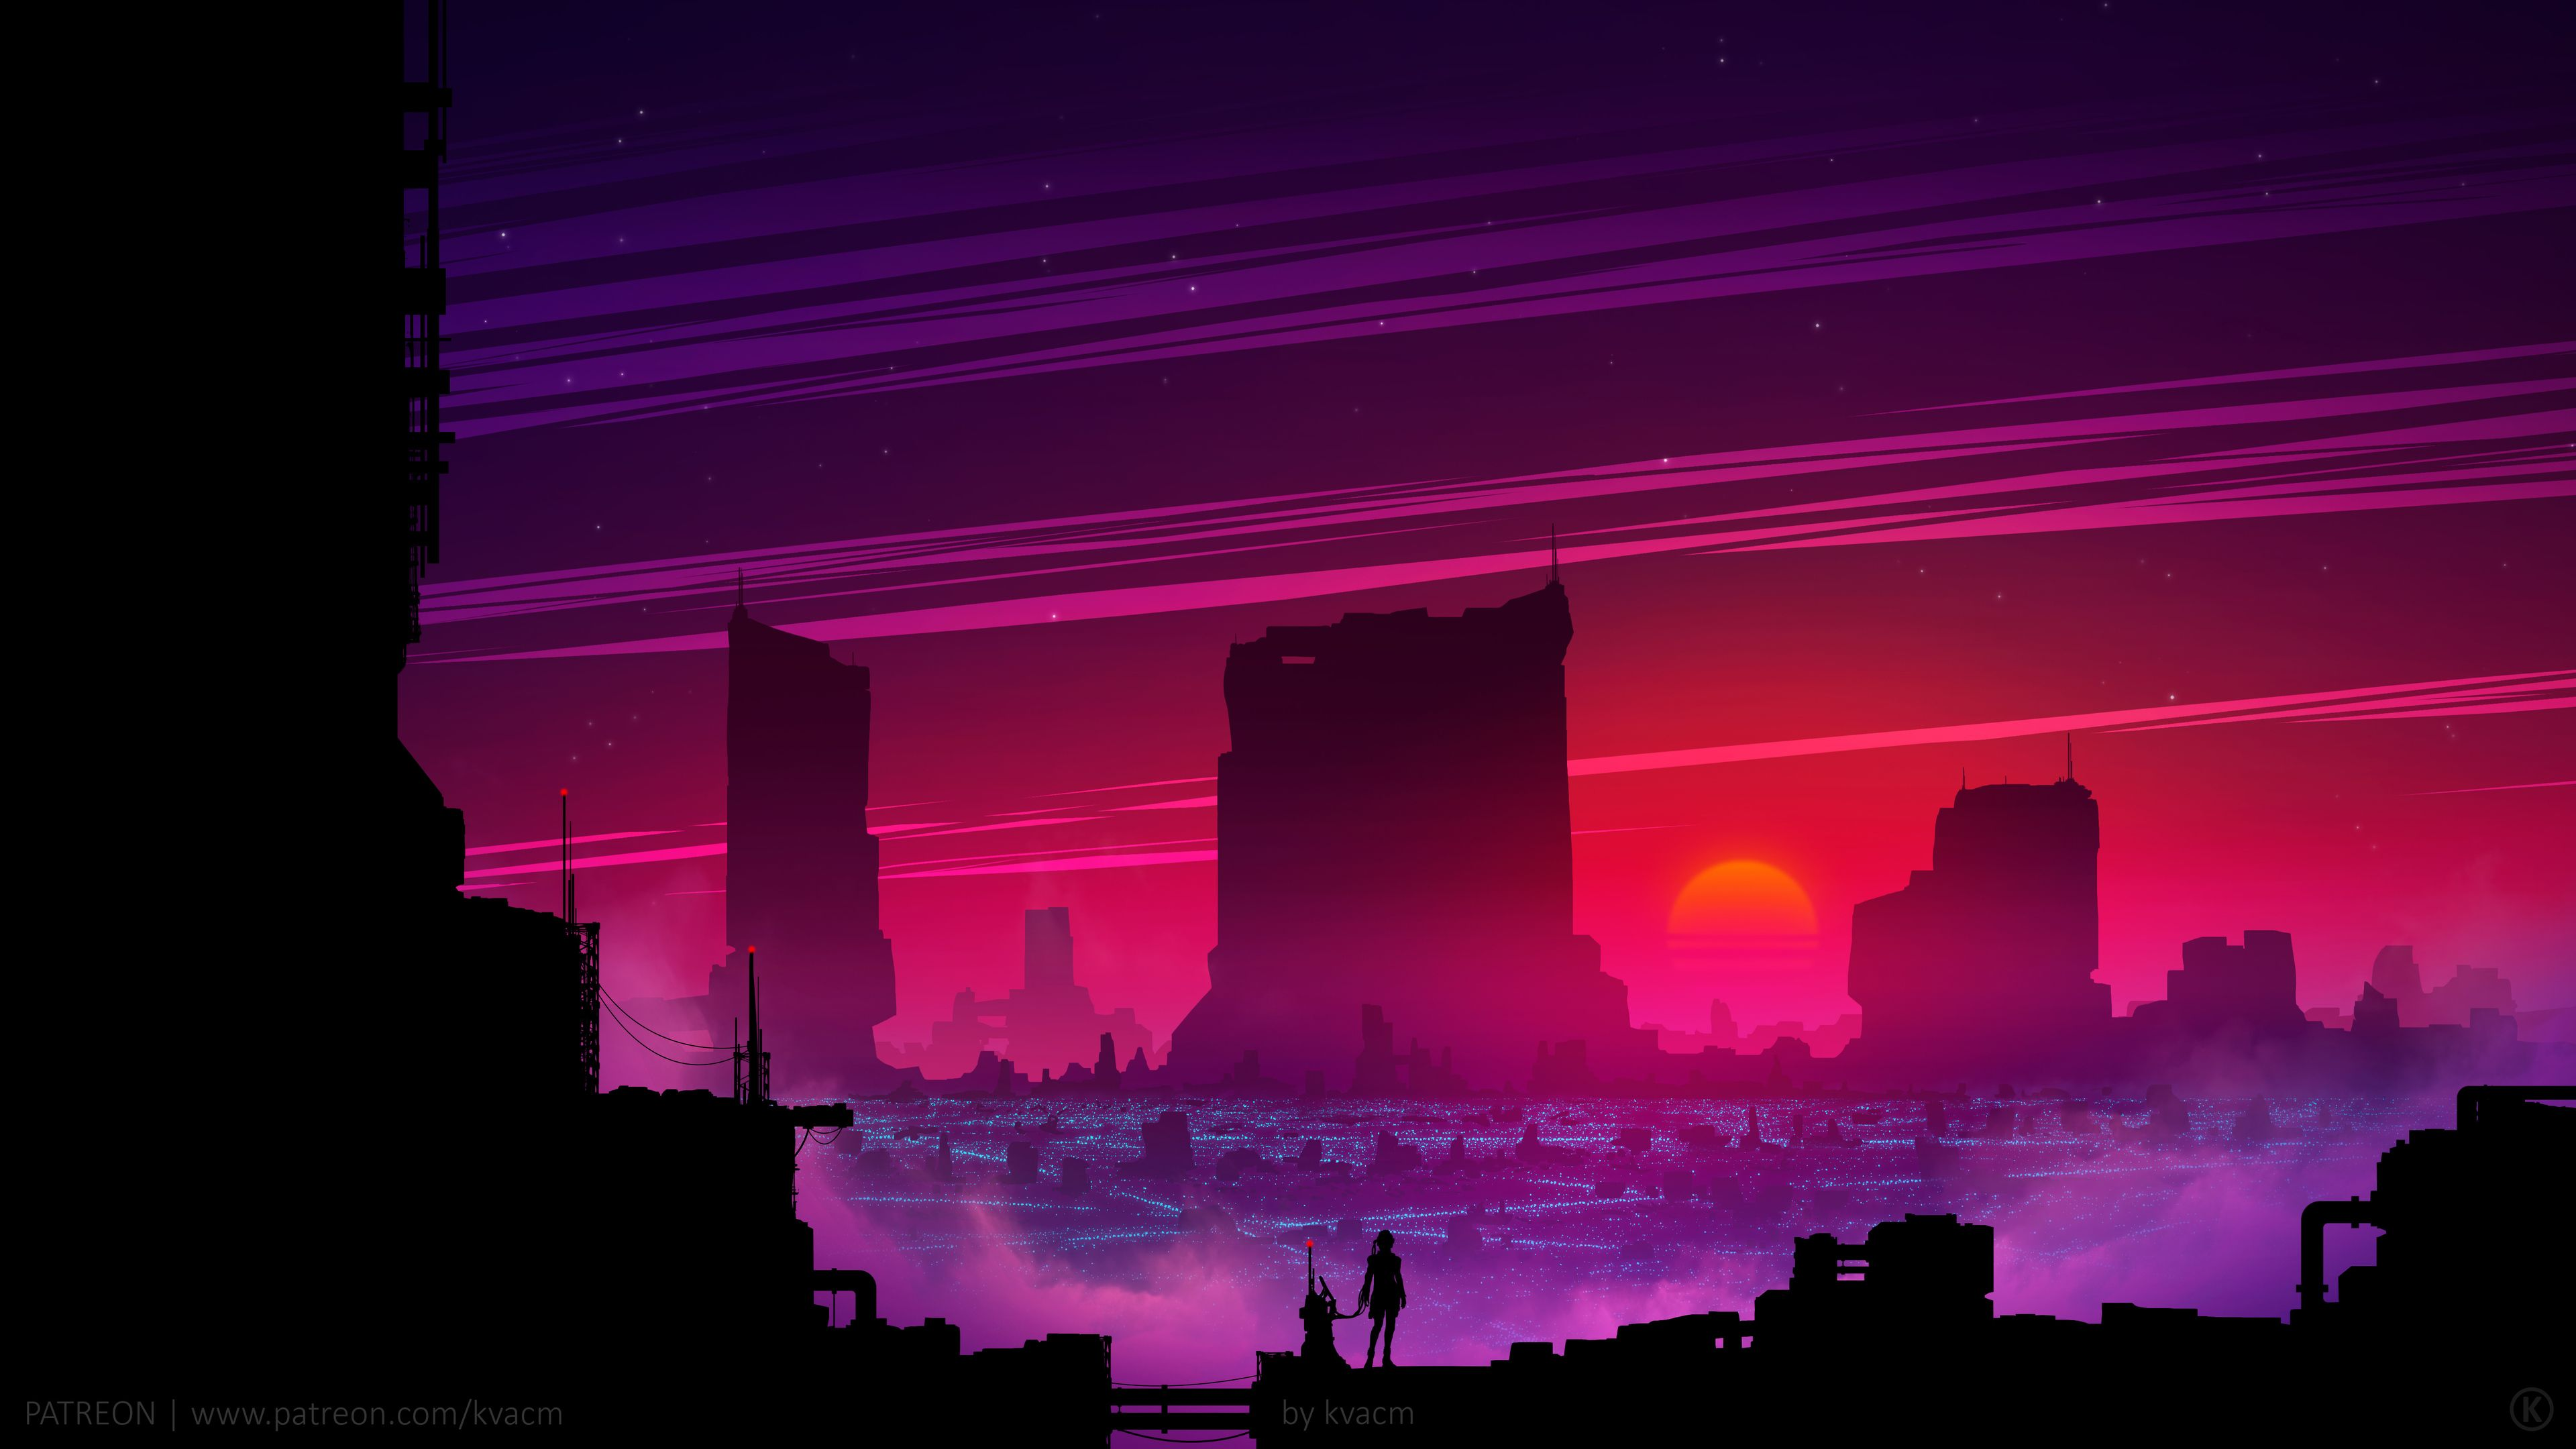 Synthwave Future Scifi 4k Synthwave Wallpapers Scifi Wallpapers Retrowave Wallpapers Hd Wallpapers Future Wall Futuristic City Sunset City Future Wallpaper